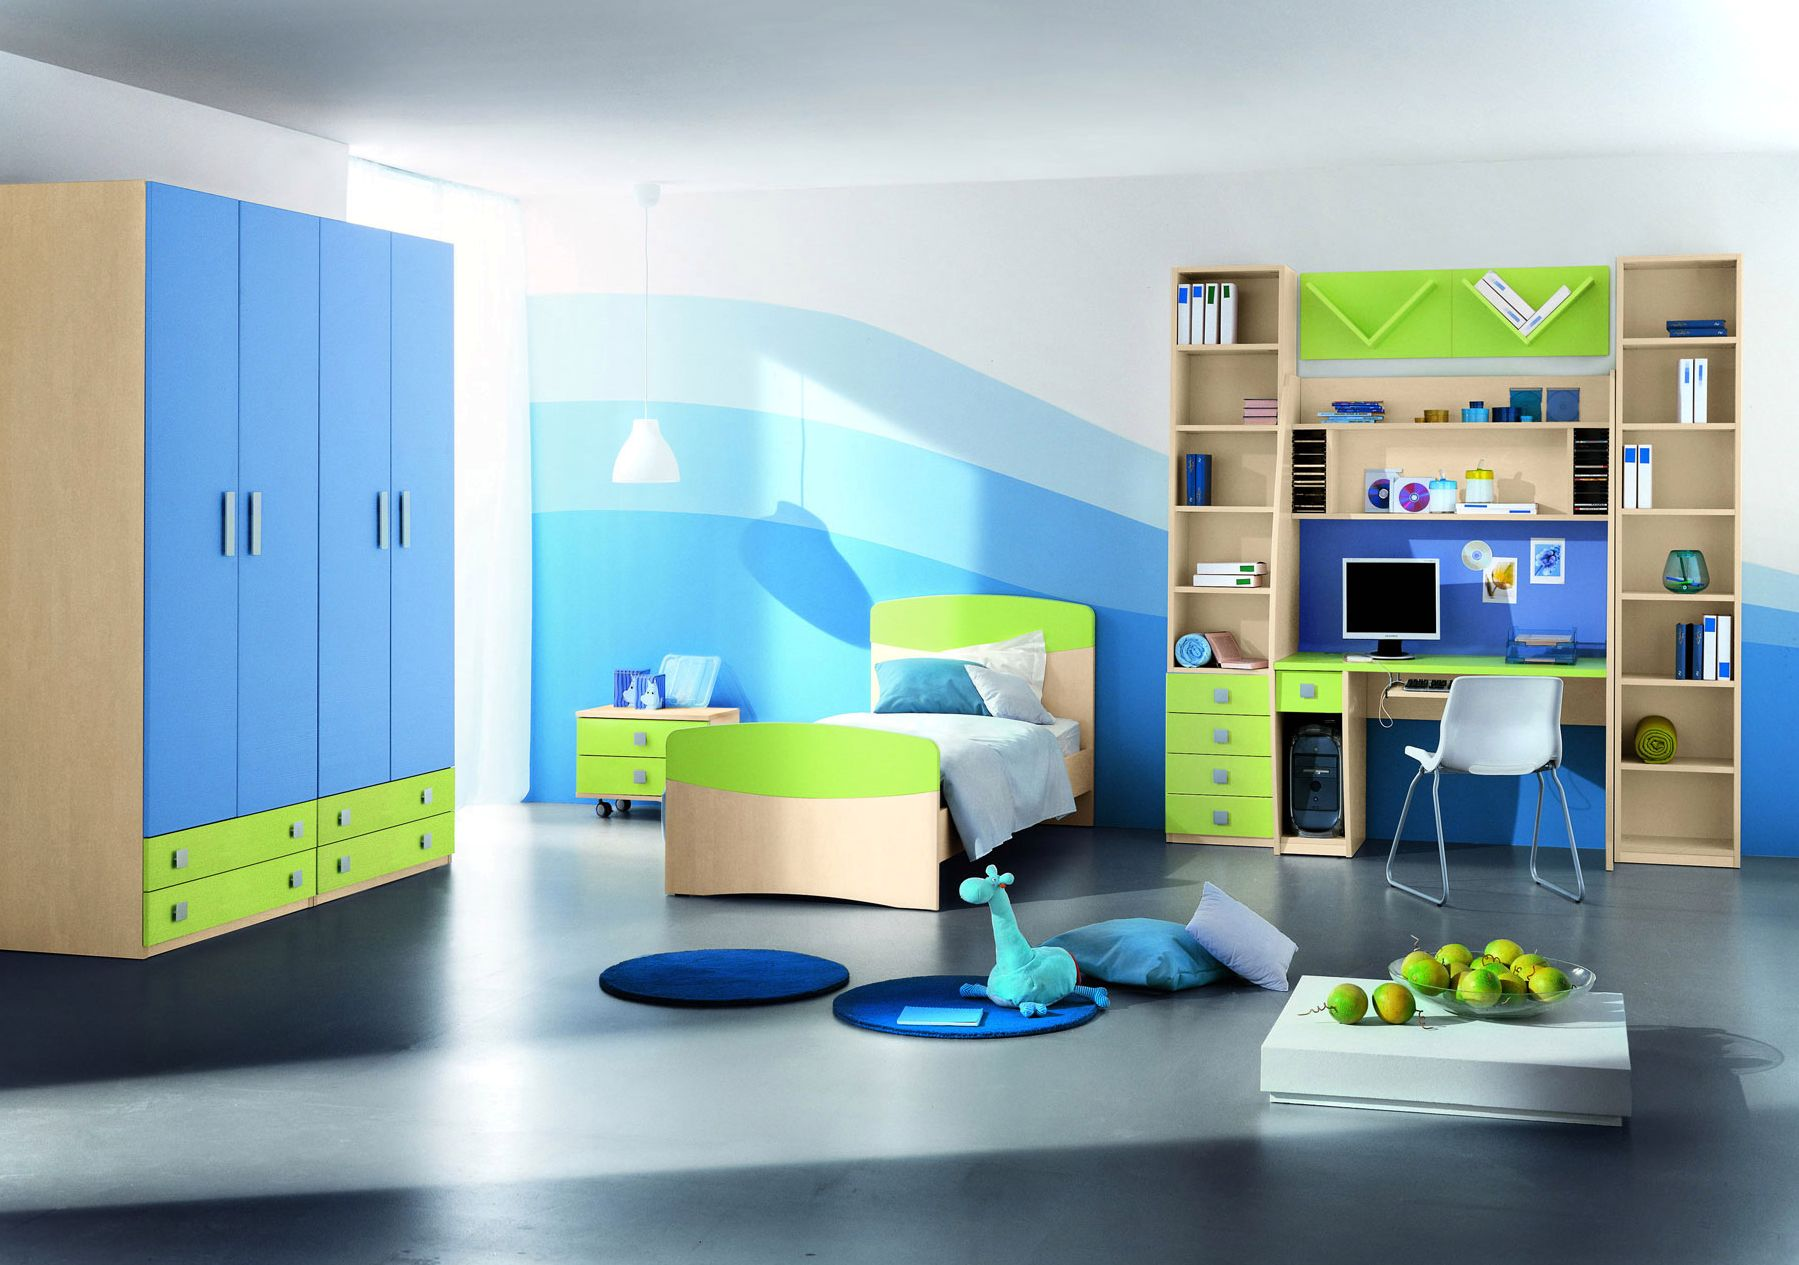 Appealing Boys Bedroom Ideas with Wooden Bed and Blue Wardrobe Cabinets on Concrete Flooring